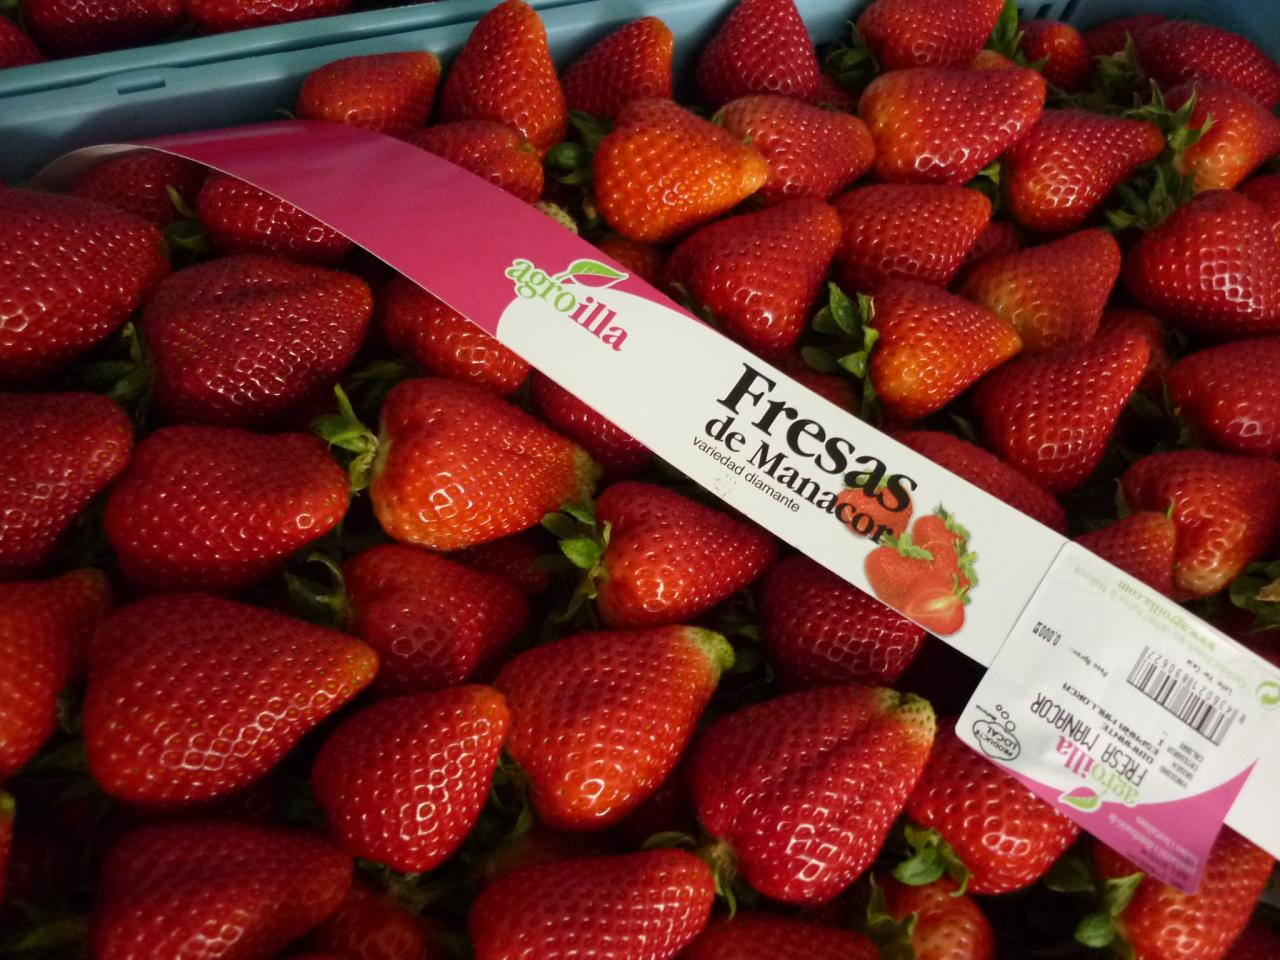 Strawberries from Manacor